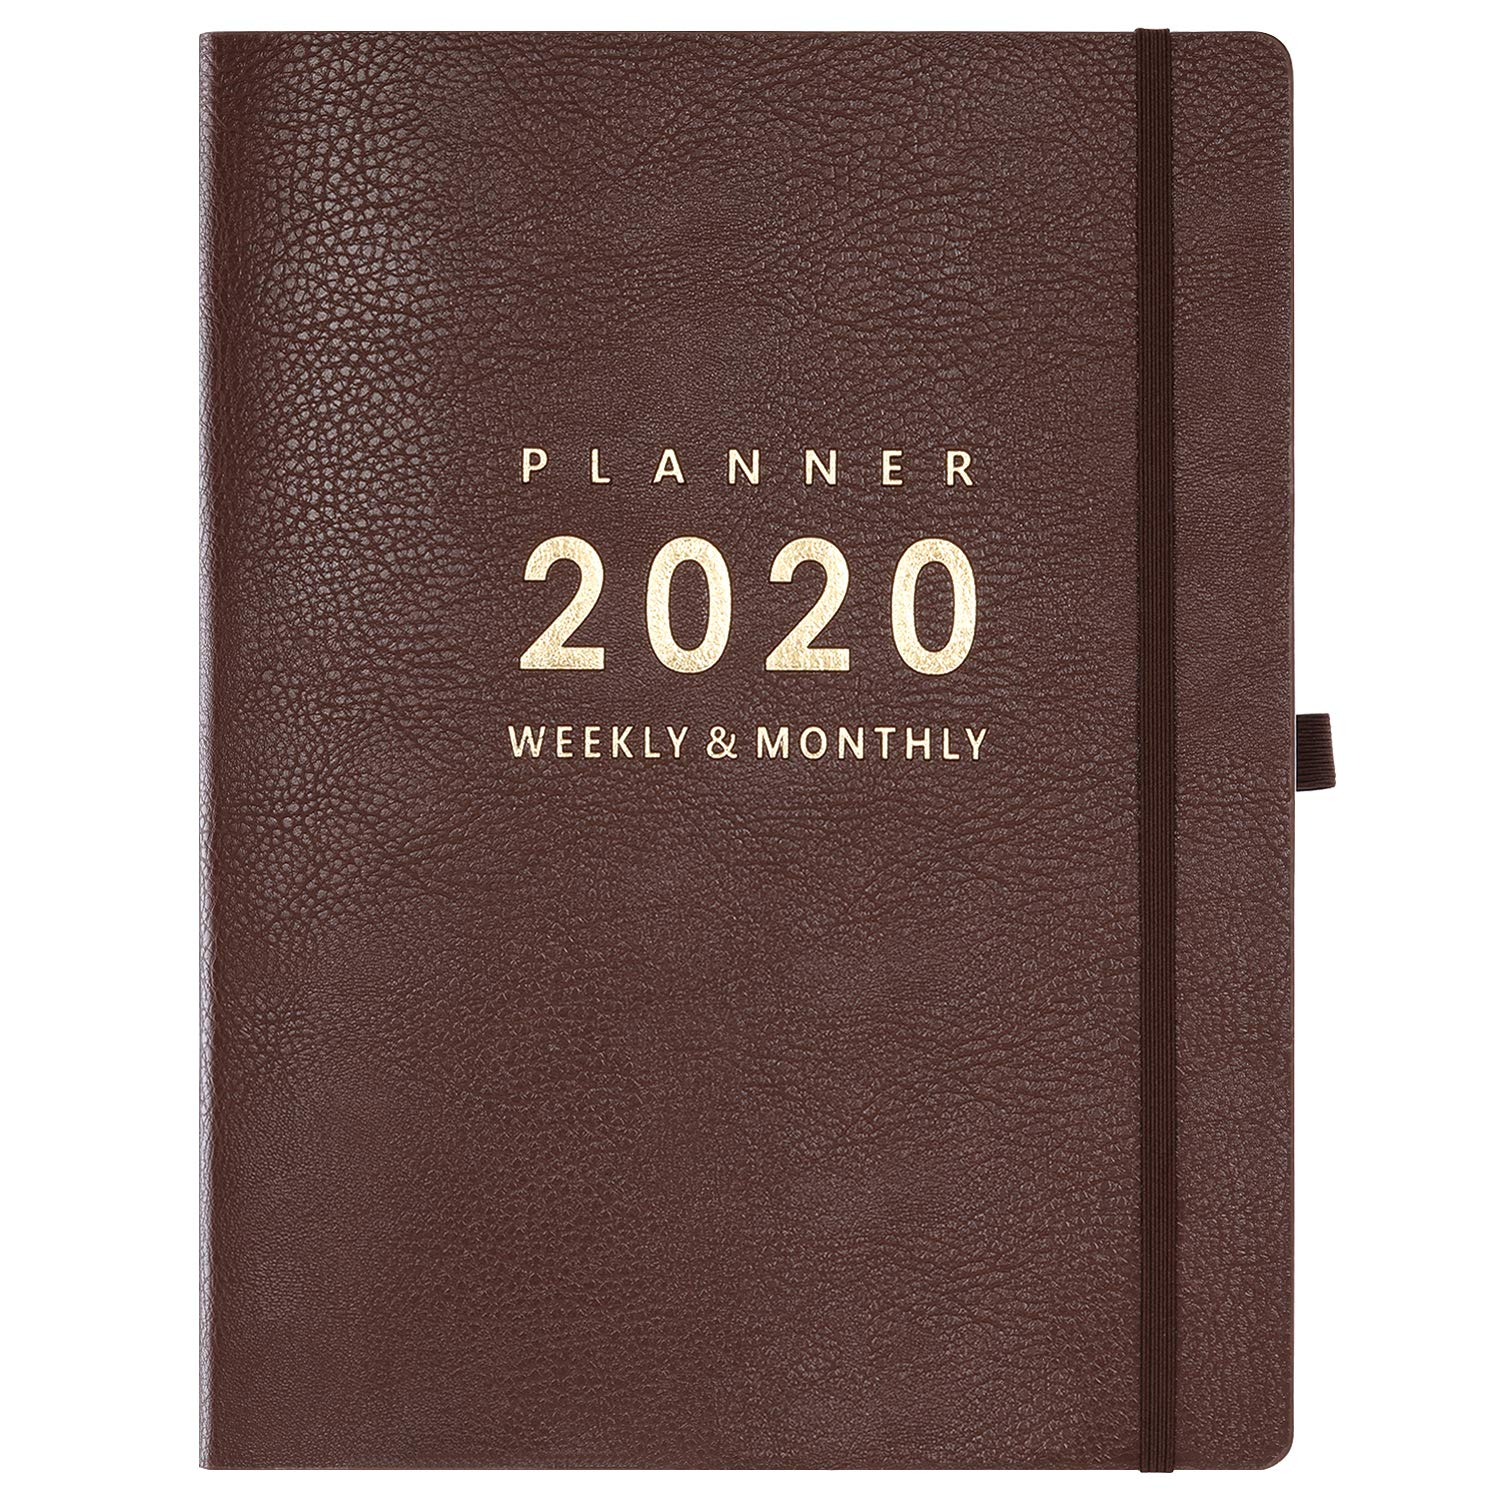 """2020 Planner - Weekly & Monthly Planner, 8.5"""" x 11"""", Soft Cover with Pen Holder and Thick Paper, Back Pocket with Julian Date - Bonus 24 Notes Pages + Gift Box - Brown"""